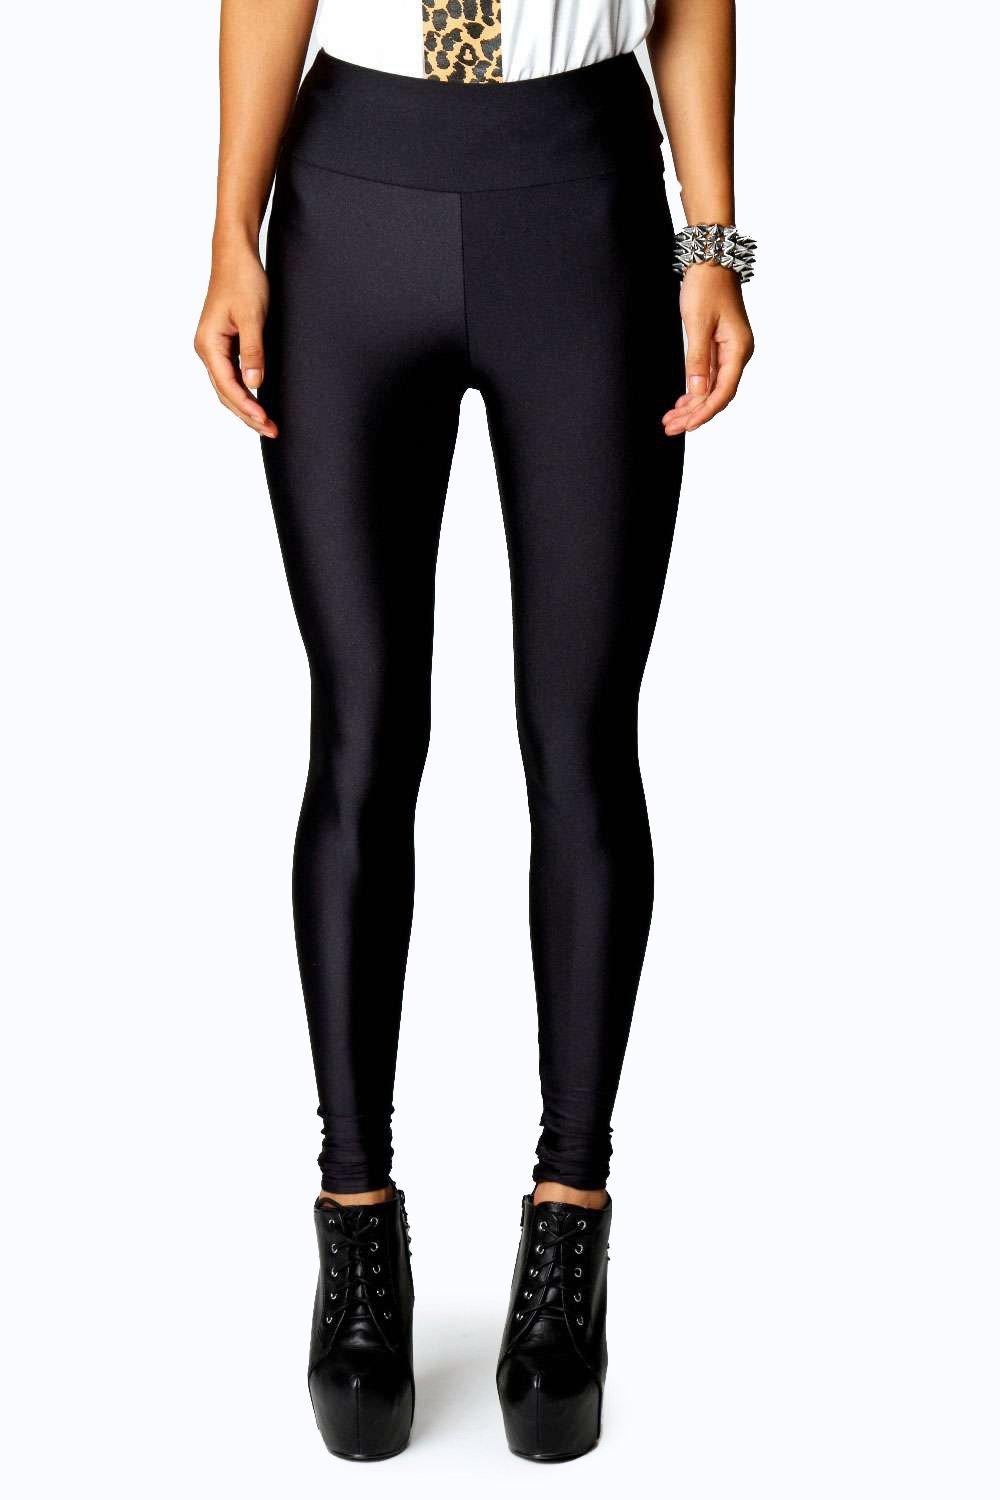 Petite Katie High Shine Waisted Disco Pants black